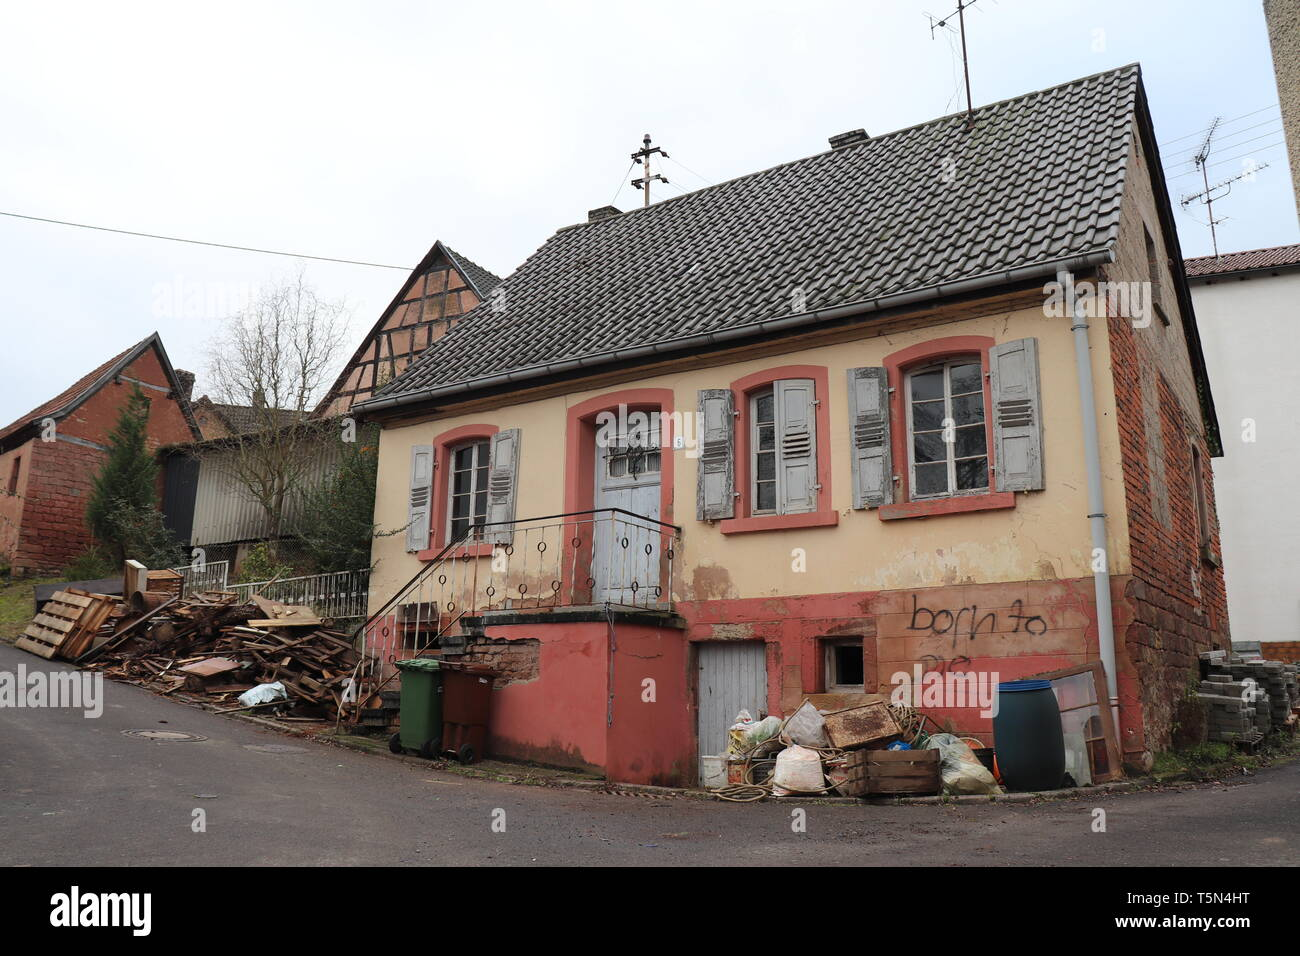 An old abandoned, run down house in Germany - Stock Image